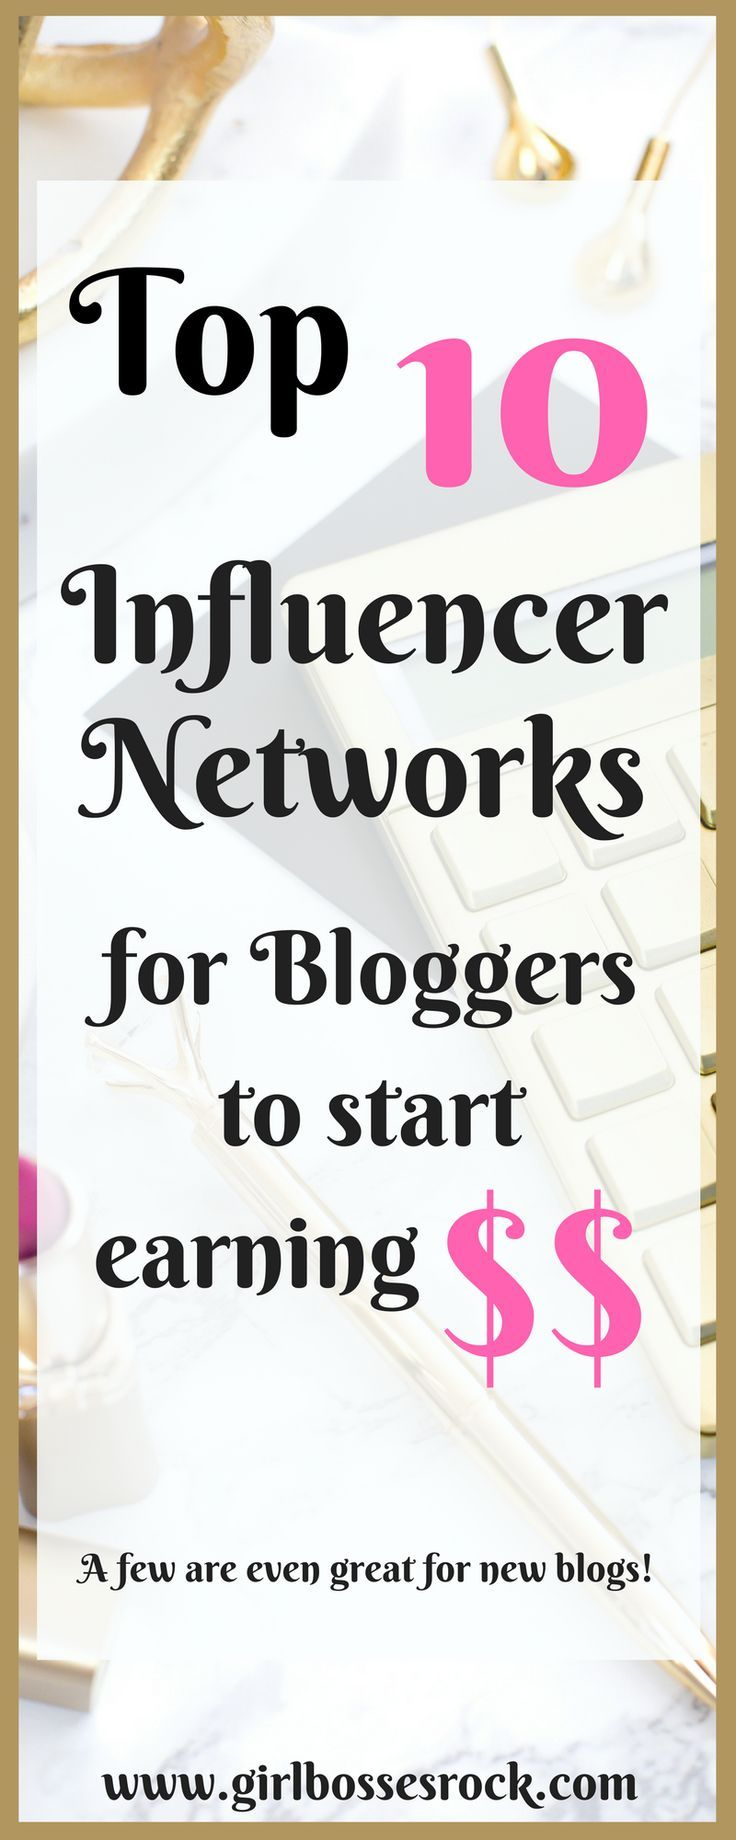 Are you ready to take your blog and social media to the next level? Aside from the many affiliate programs, there are also many influencer networks that will pay you to post about their product or service! These are my top affiliate programs and influencer networks to join to monetize your blog! #AffiliateMarketing  #affiliateprograms #InfluencerMarketing #Influencers #monetizeinstagram #monetizeyourblog #InfluencerMarketing